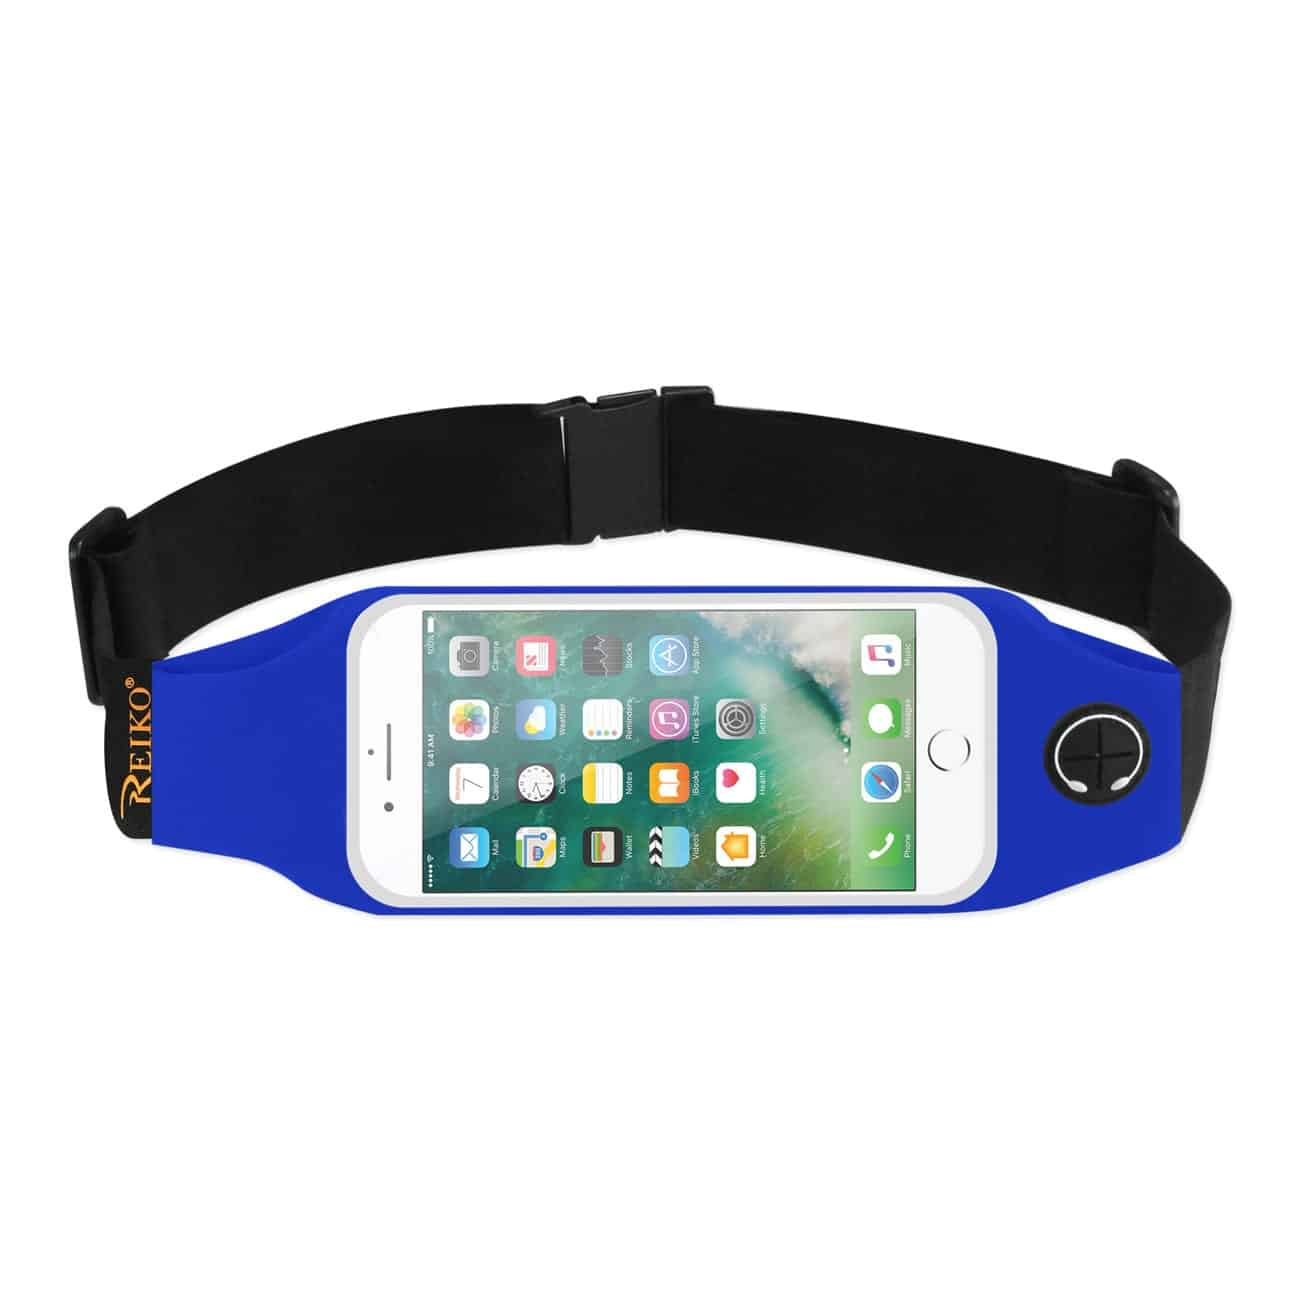 RUNNING SPORT BELT FOR IPHONE 7 PLUS/ 6S PLUS OR 5.5 INCHES DEVICE WITH TWO POCKETS AND LED IN BLUE (5.5x5.5 INCHES)